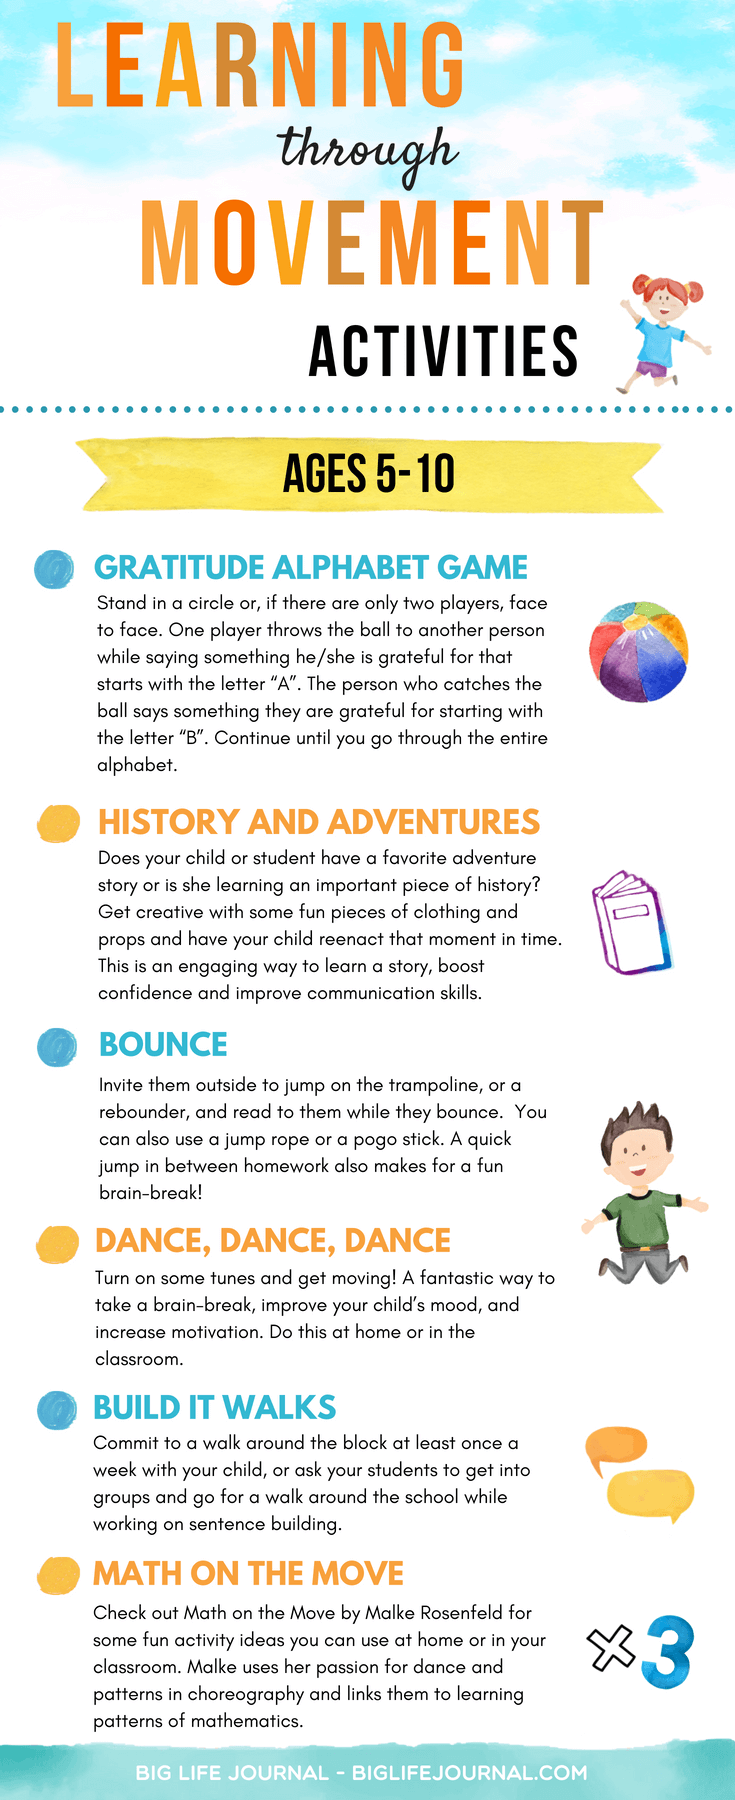 Adventure Story Ideas how to raise smart kids through movement (15 age-specific